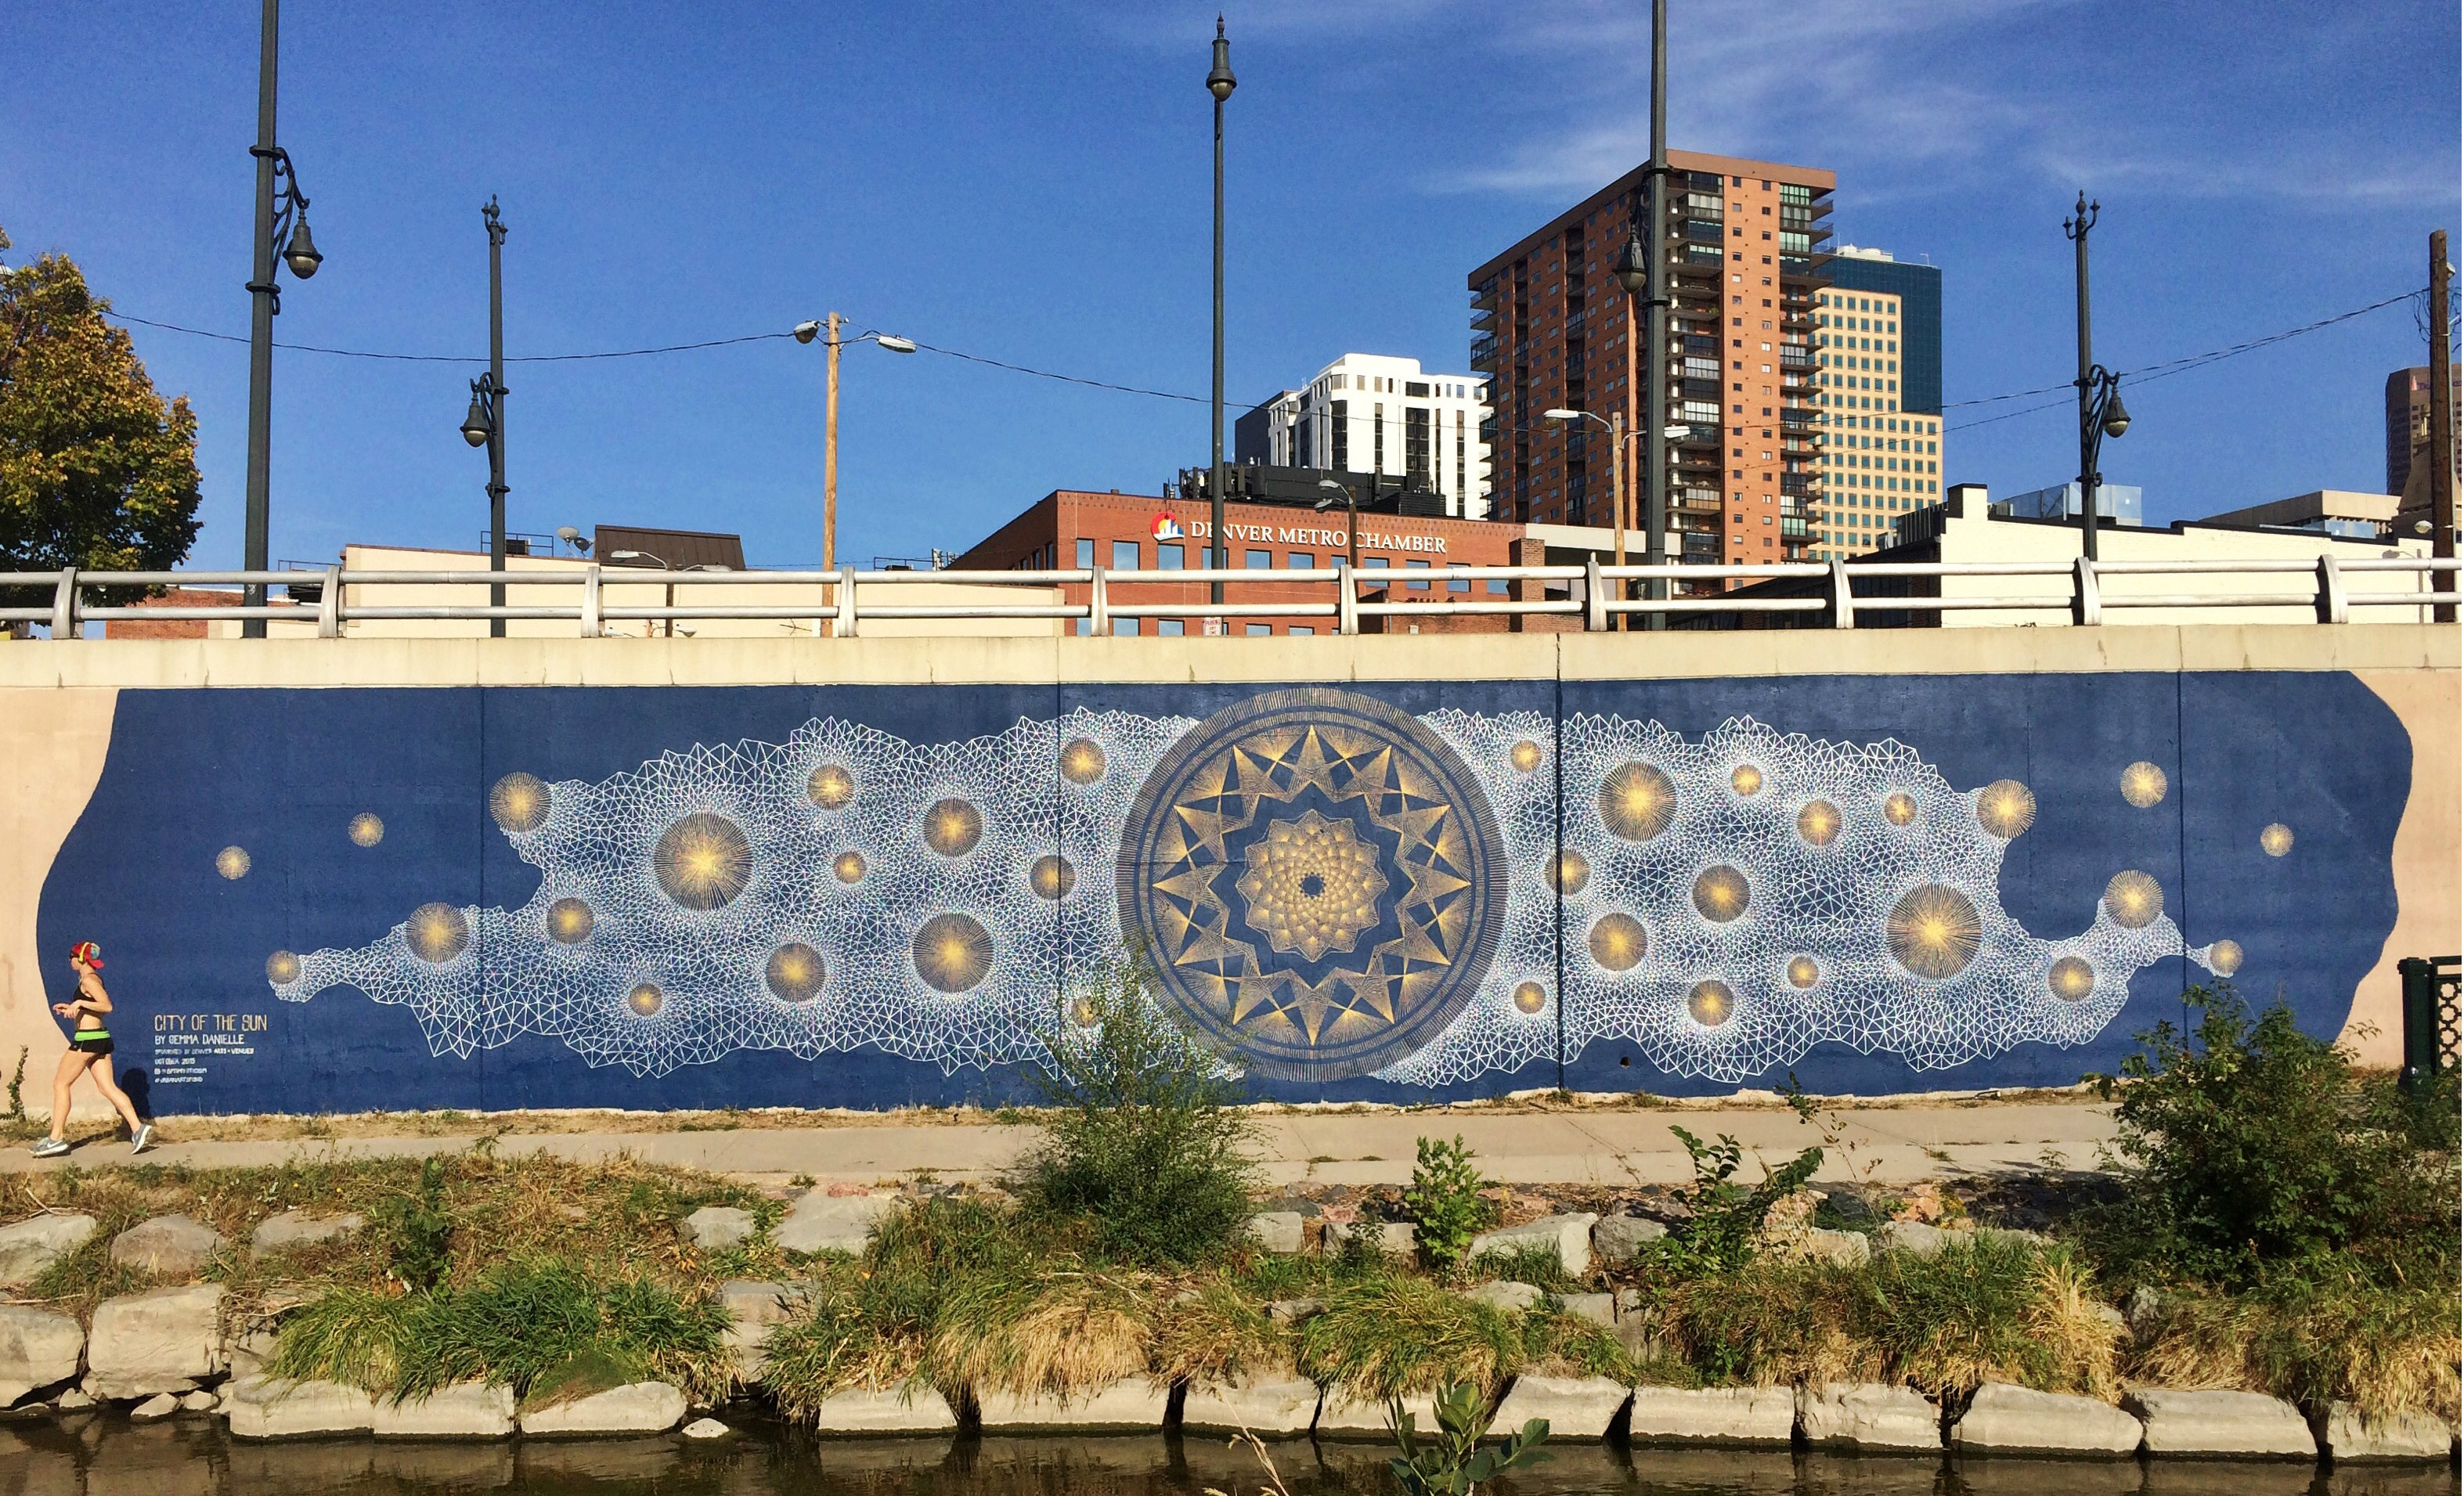 Photo: 'City Of The Sun' Mural By Artist Gemma Danielle